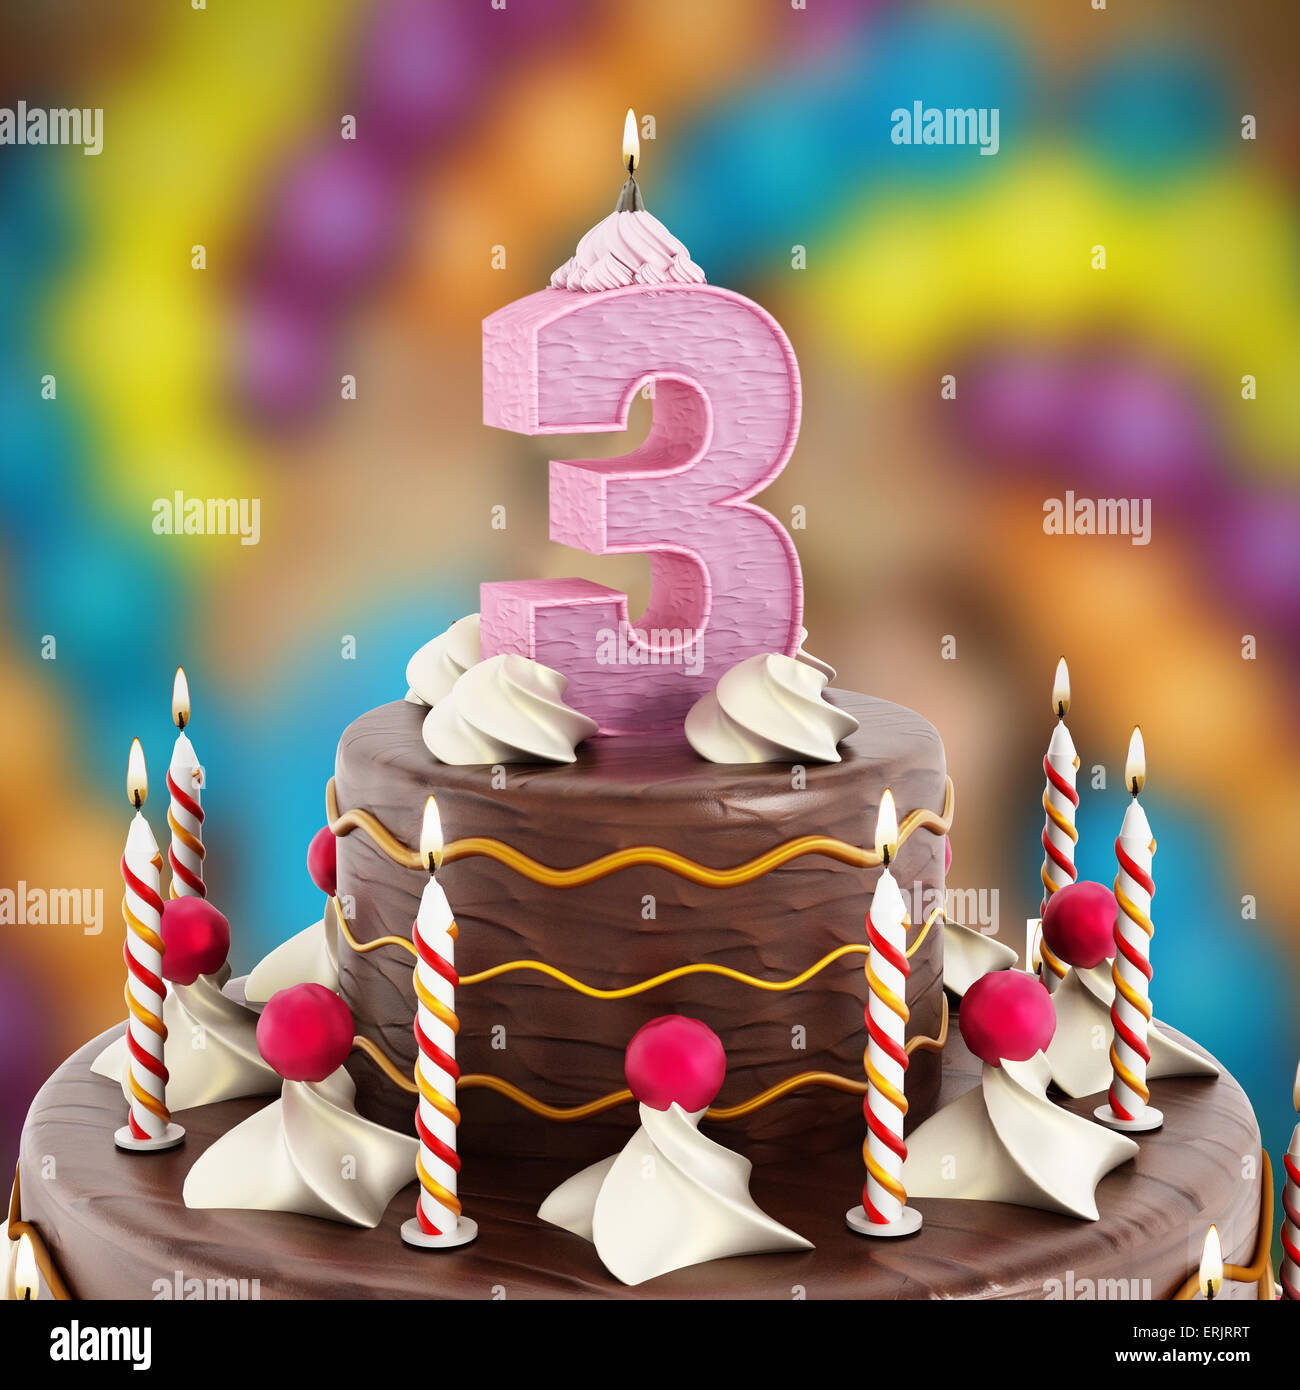 Birthday Cake With Number 3 Lit Candle Stock Photo